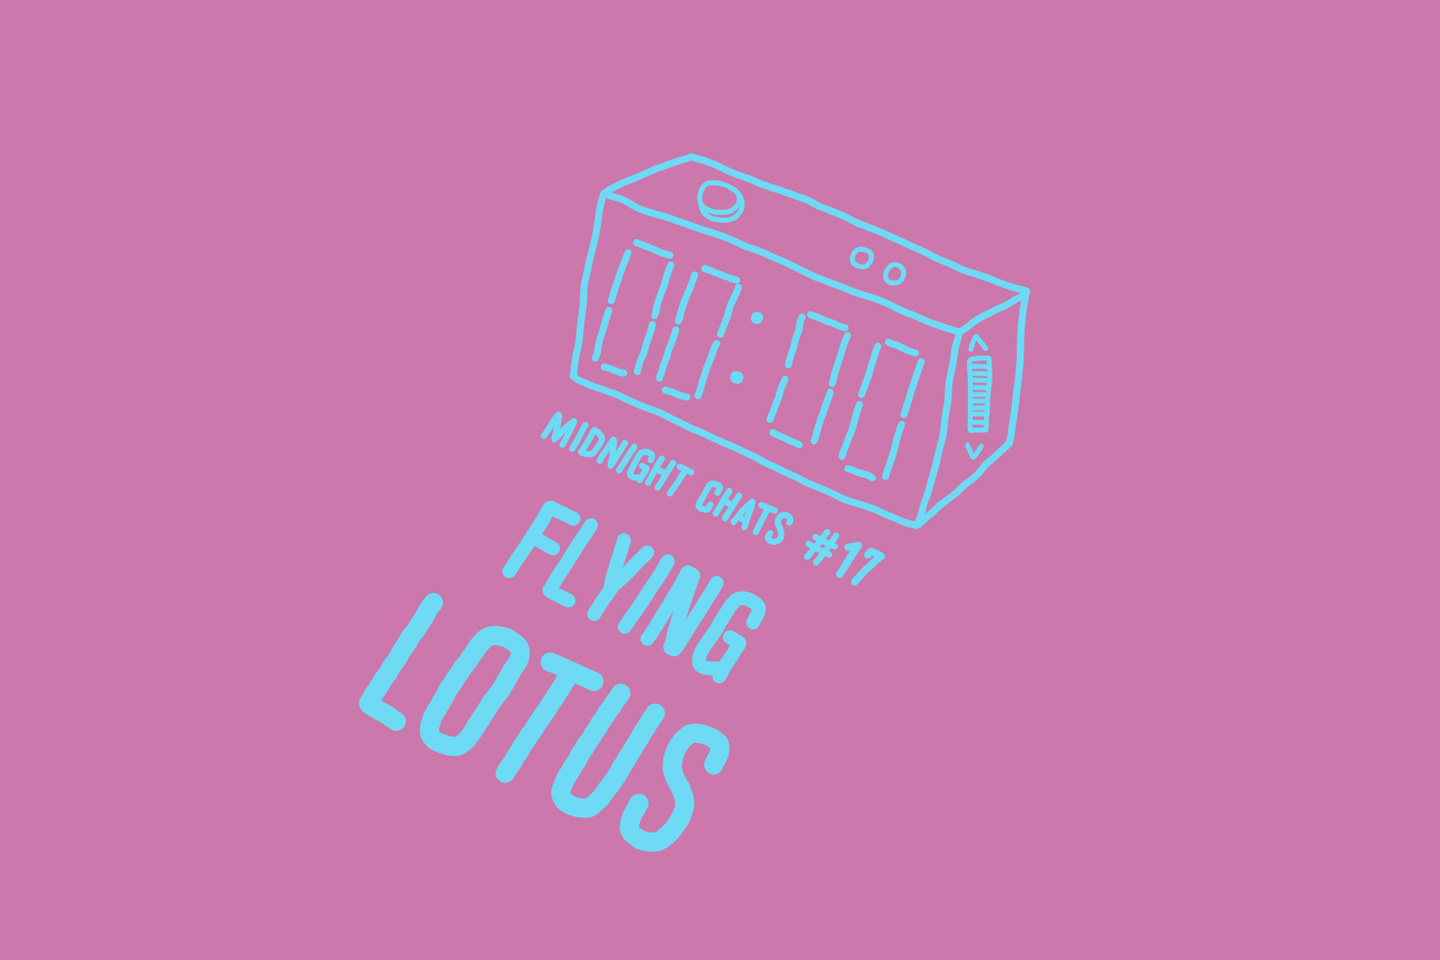 Flying Lotus Midnight Chats Podcast Episode 17 Loud